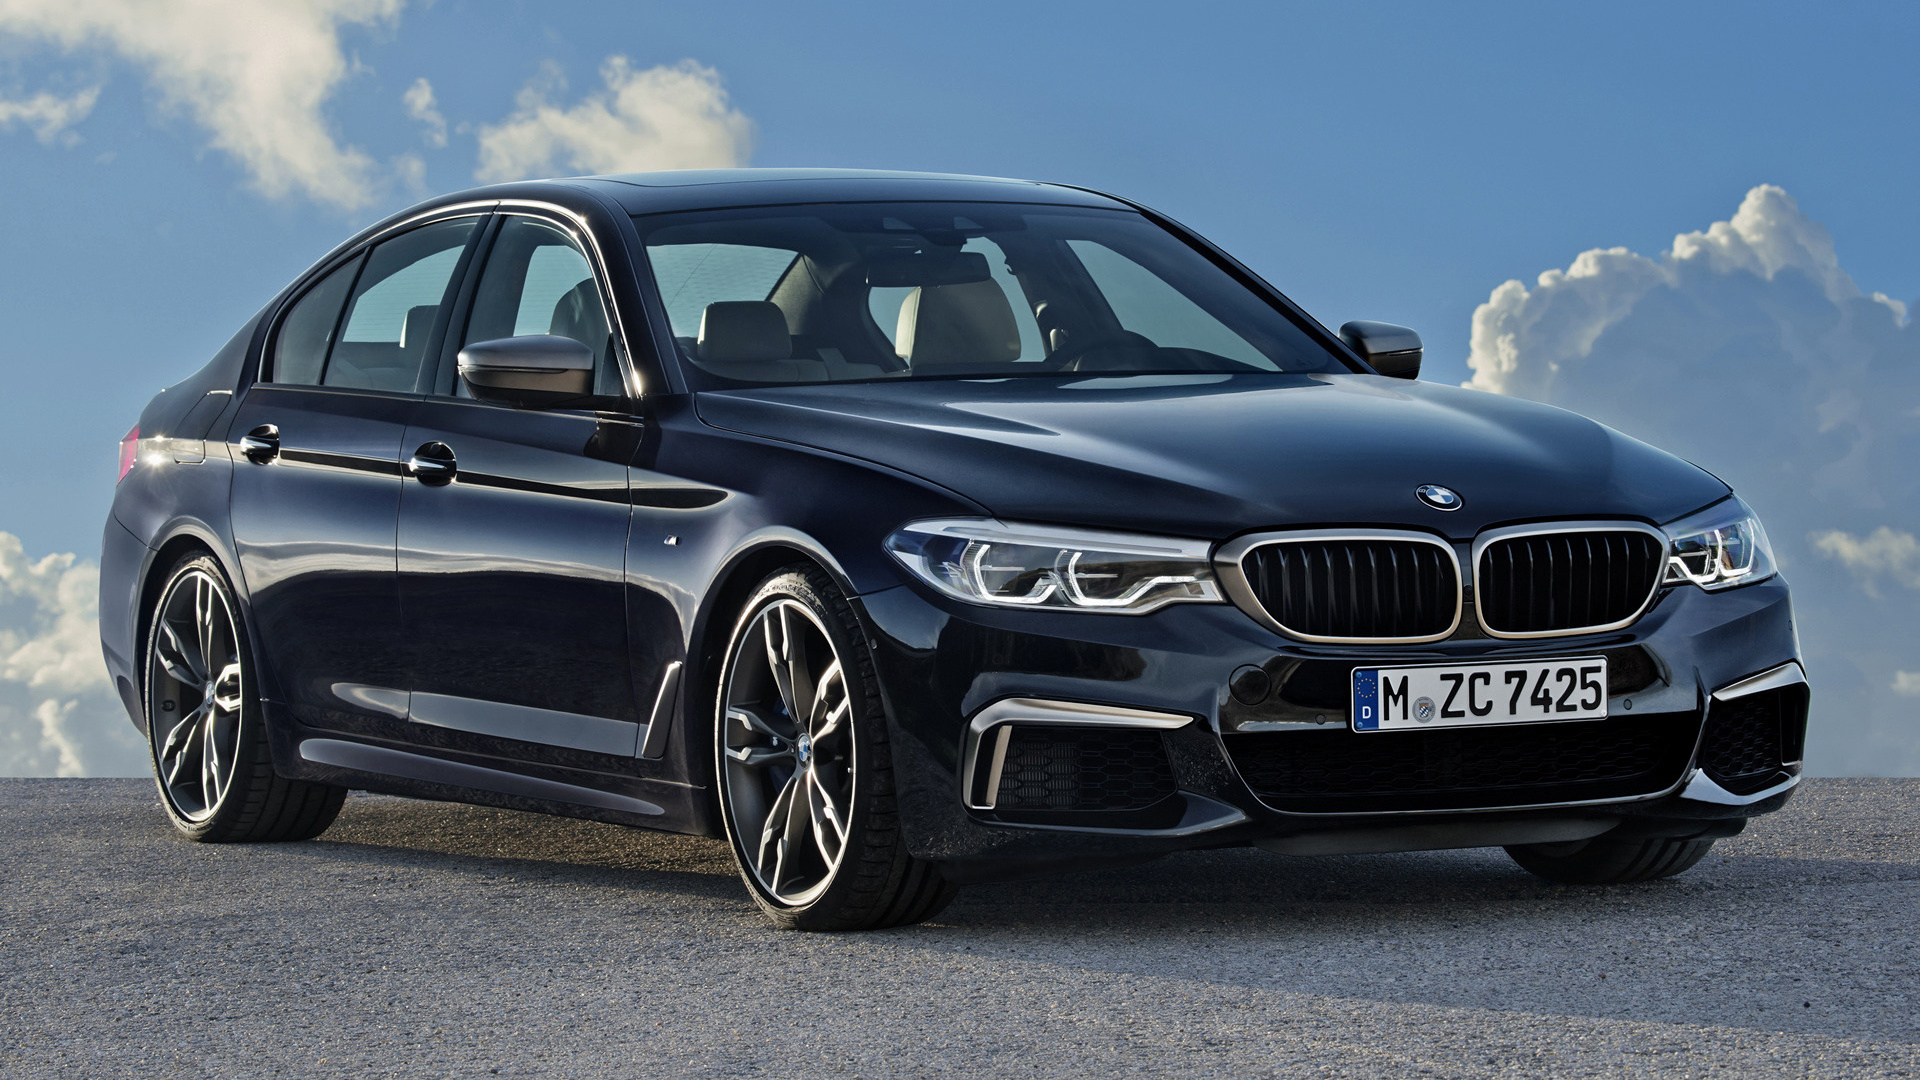 BMW M550i (2017) Wallpapers and HD Images - Car Pixel